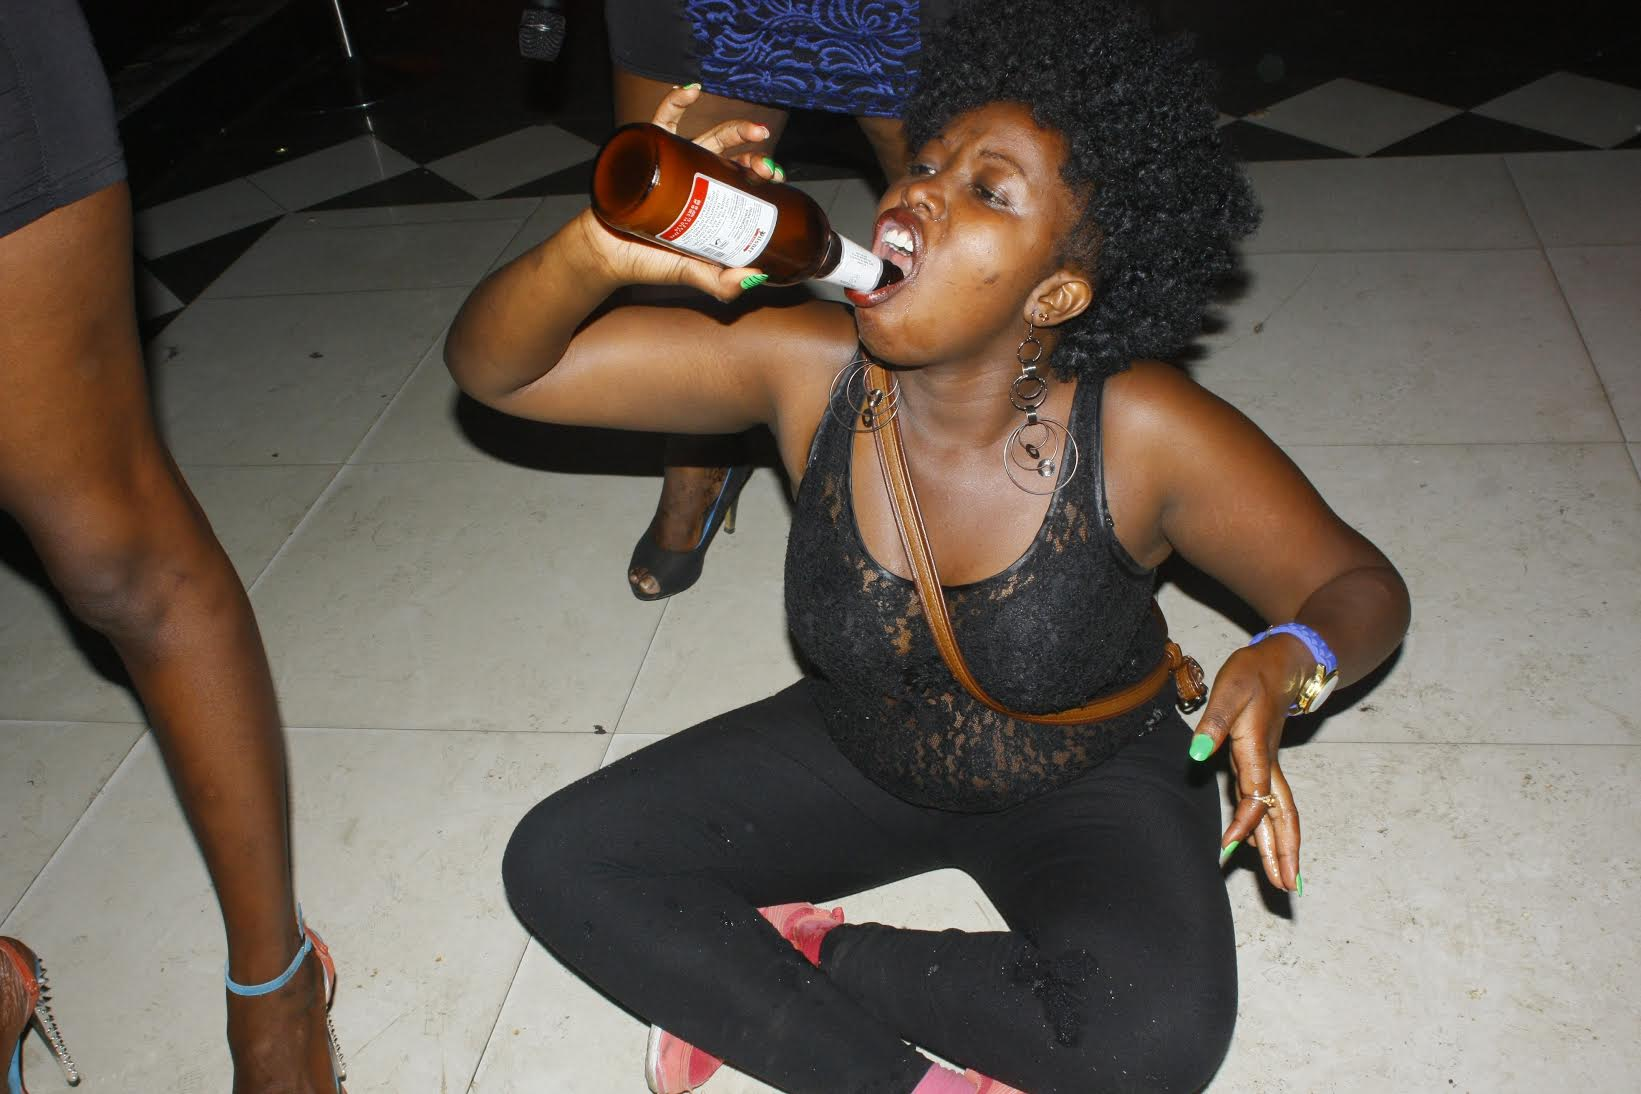 These Women Went All Ratchet Simulating Sex At A Nairobi Club On Sunday Night Photos -7971